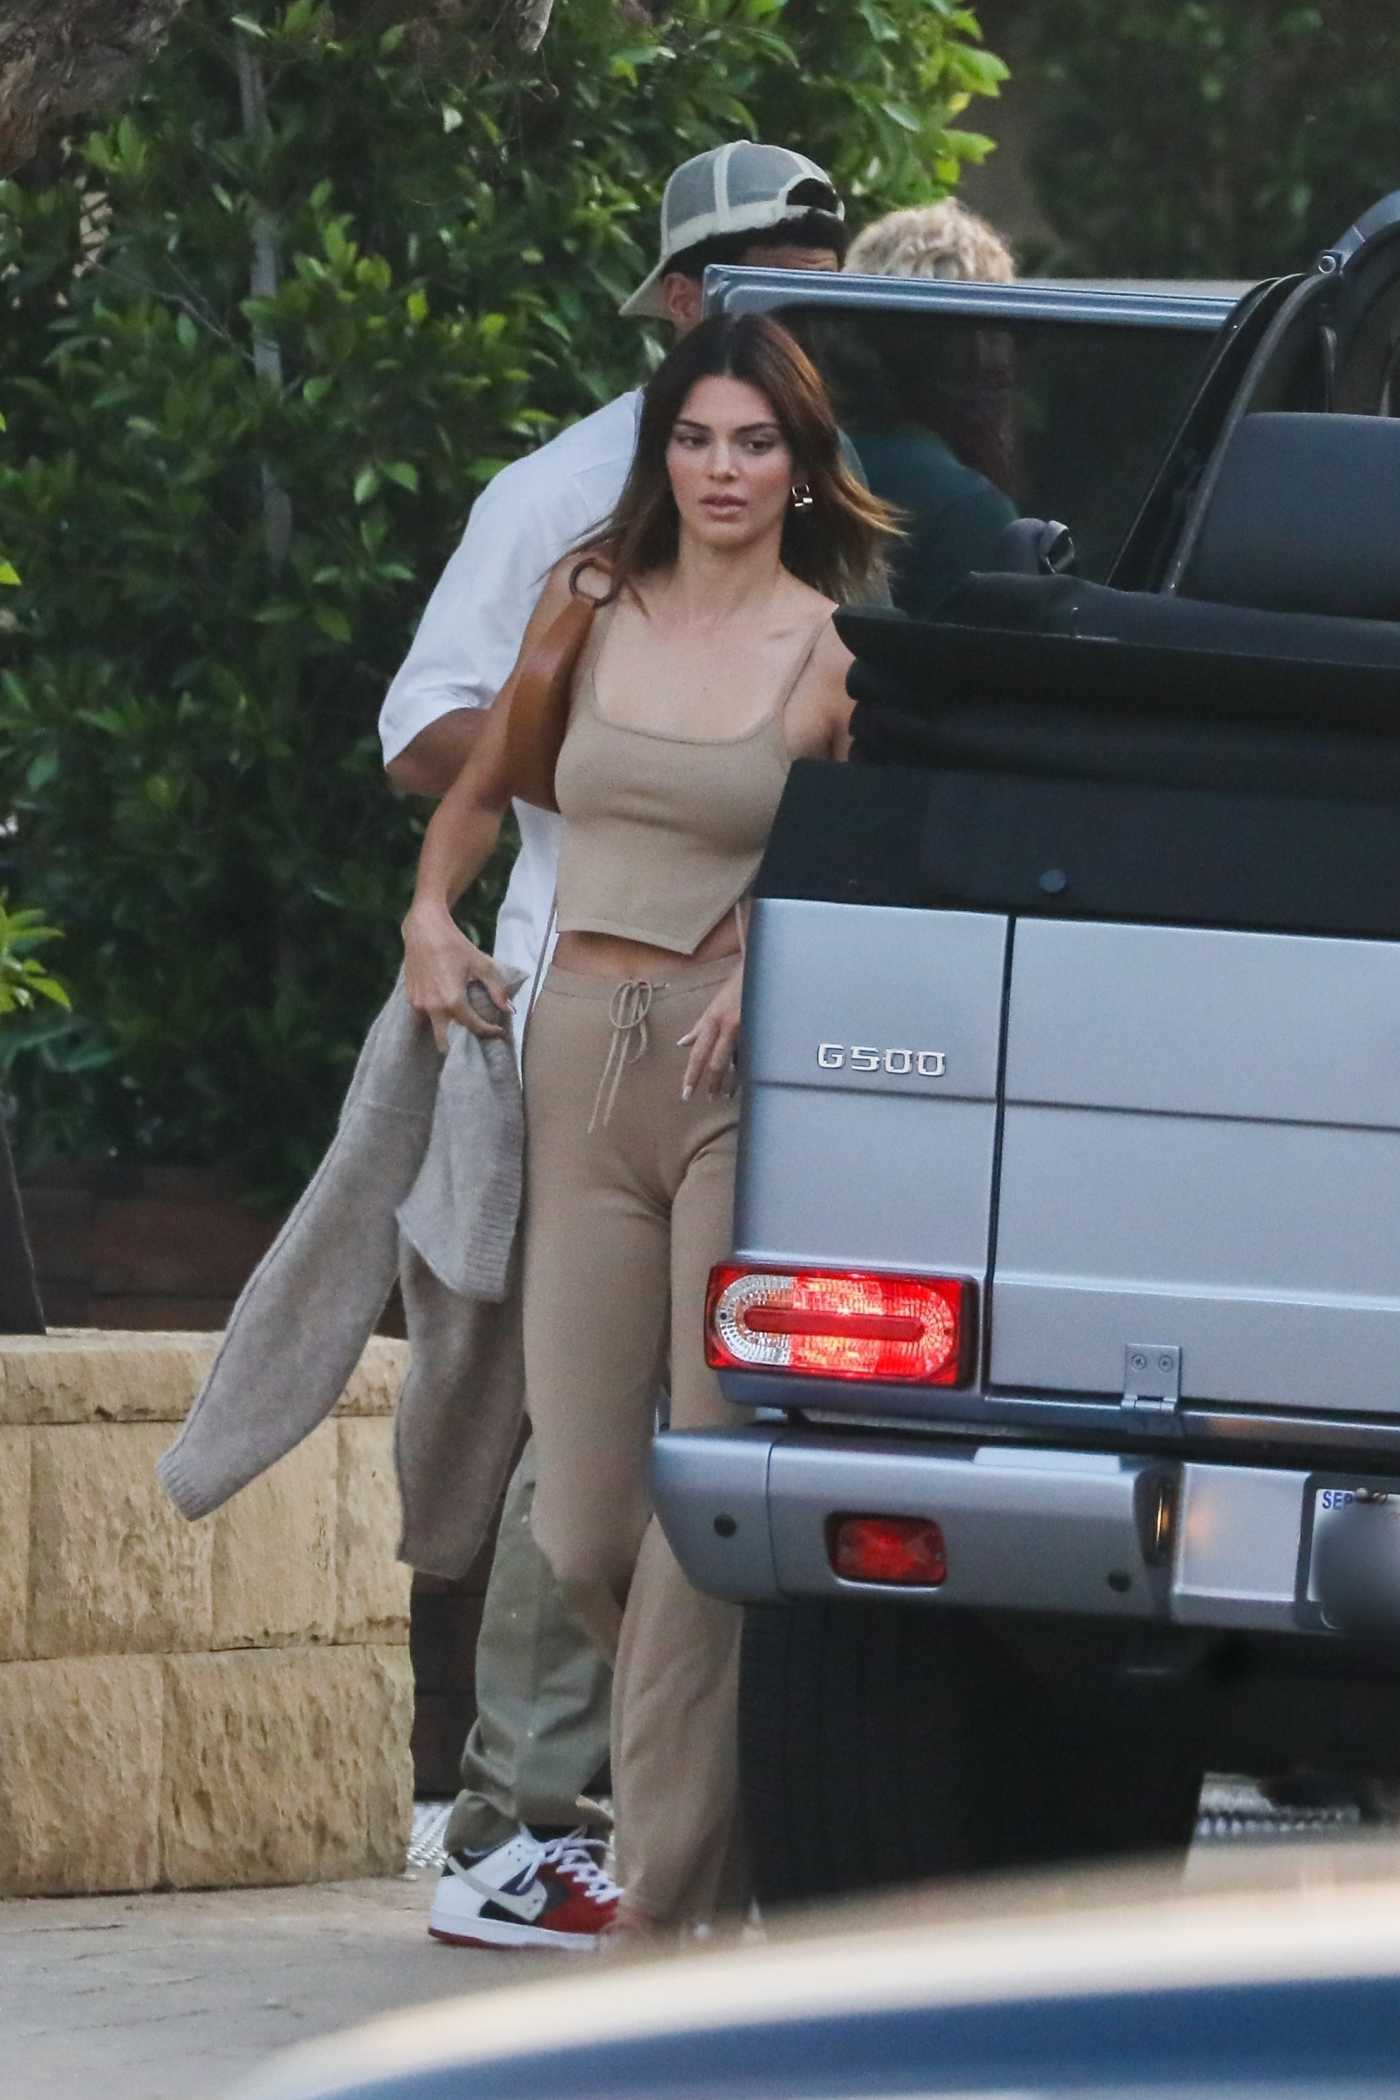 Kendall Jenner in a Beige Top Arrives at SoHo House with Friends in Malibu 08/20/2020